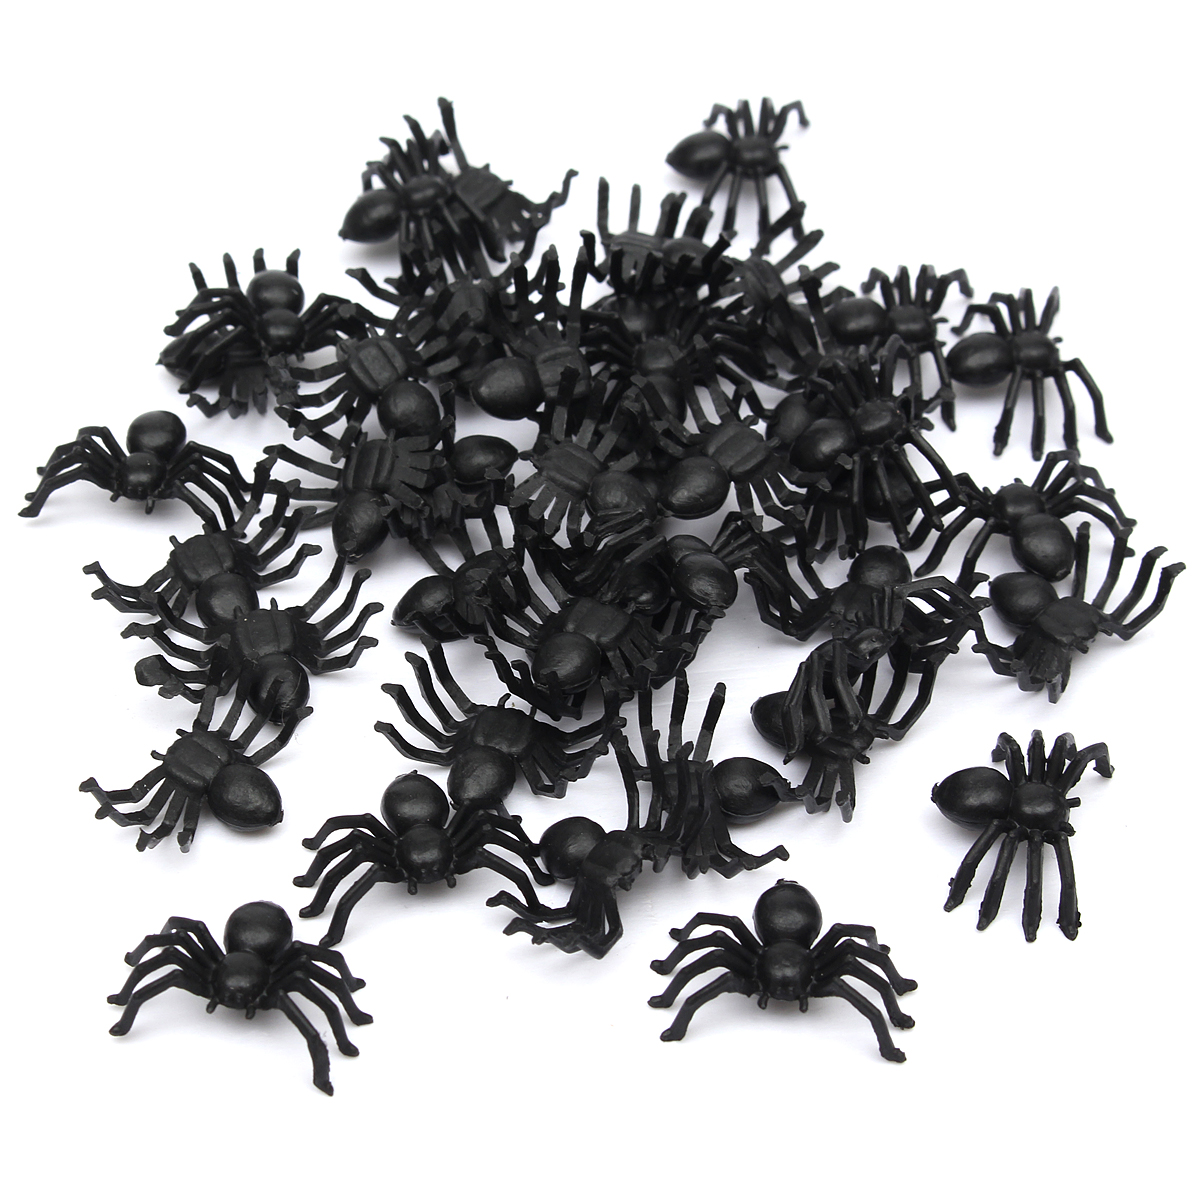 50Pcs/Set Funny Toys Halloween Decorative Spiders Small Black Plastic Fake Spider Toys Novelty Joke Prank Realistic Props